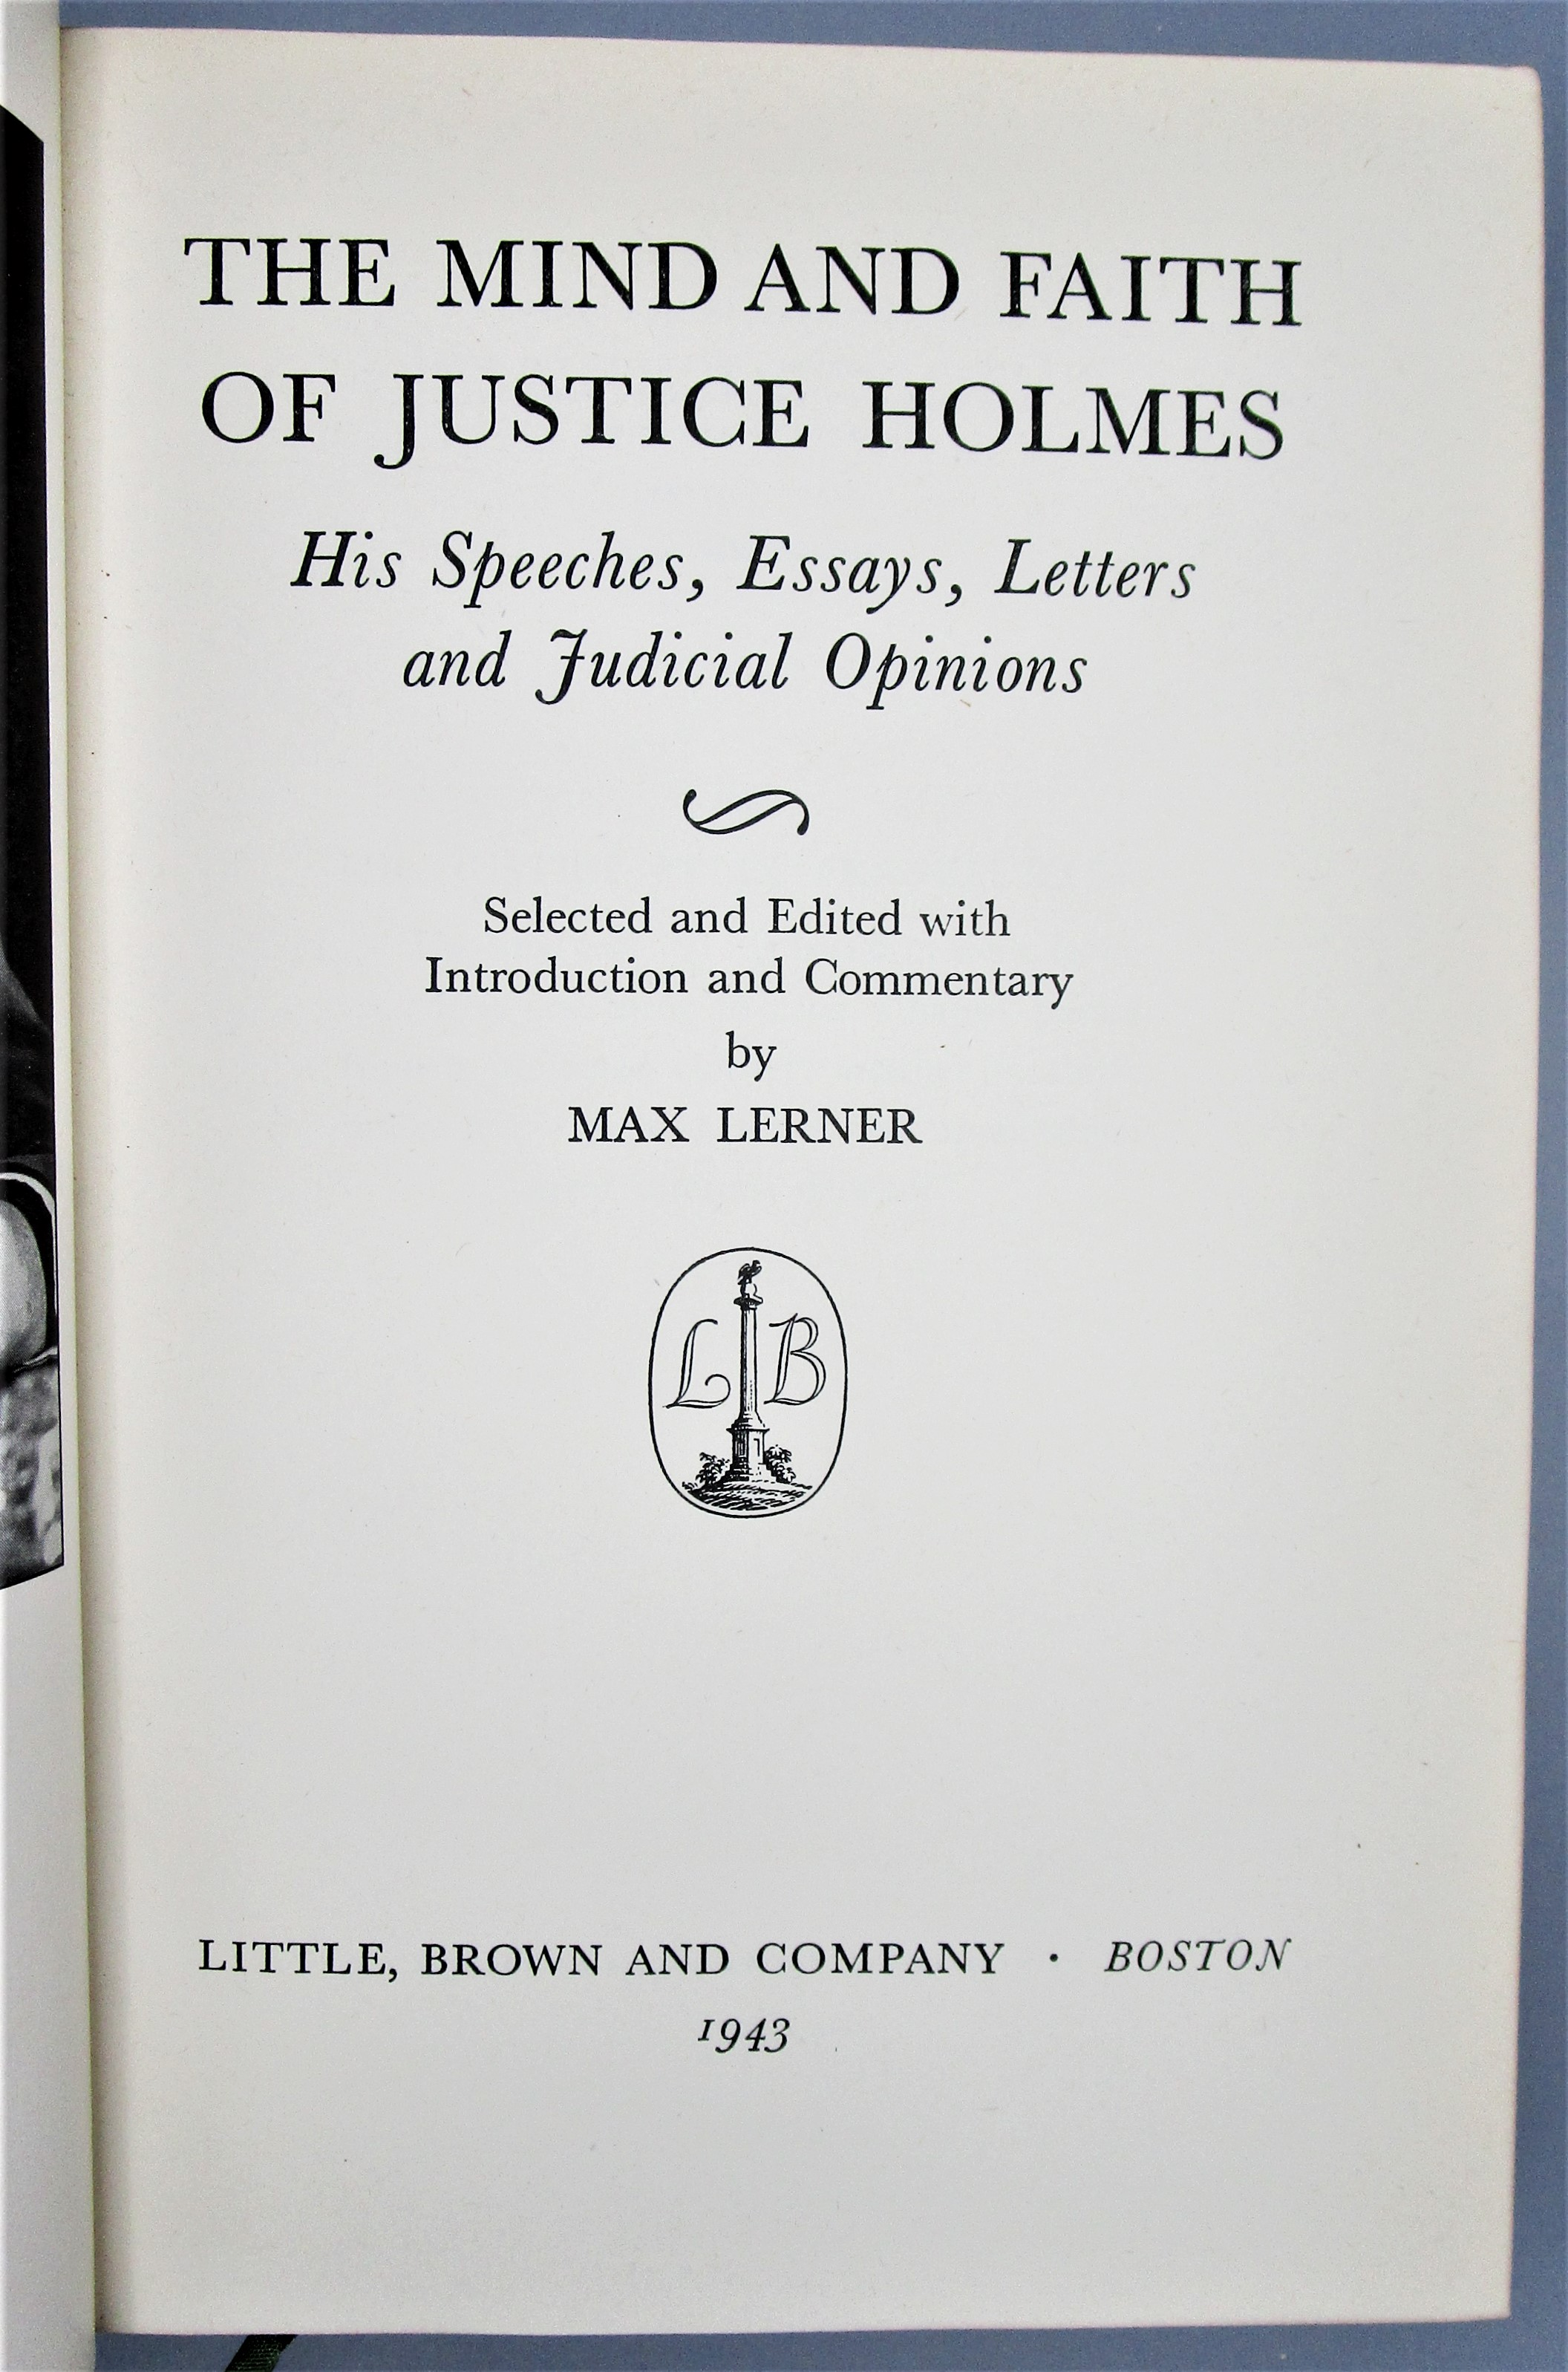 THE MIND AND FAITH OF JUSTICE HOLMES, by Max Lerner -  1943 [1st Ed]